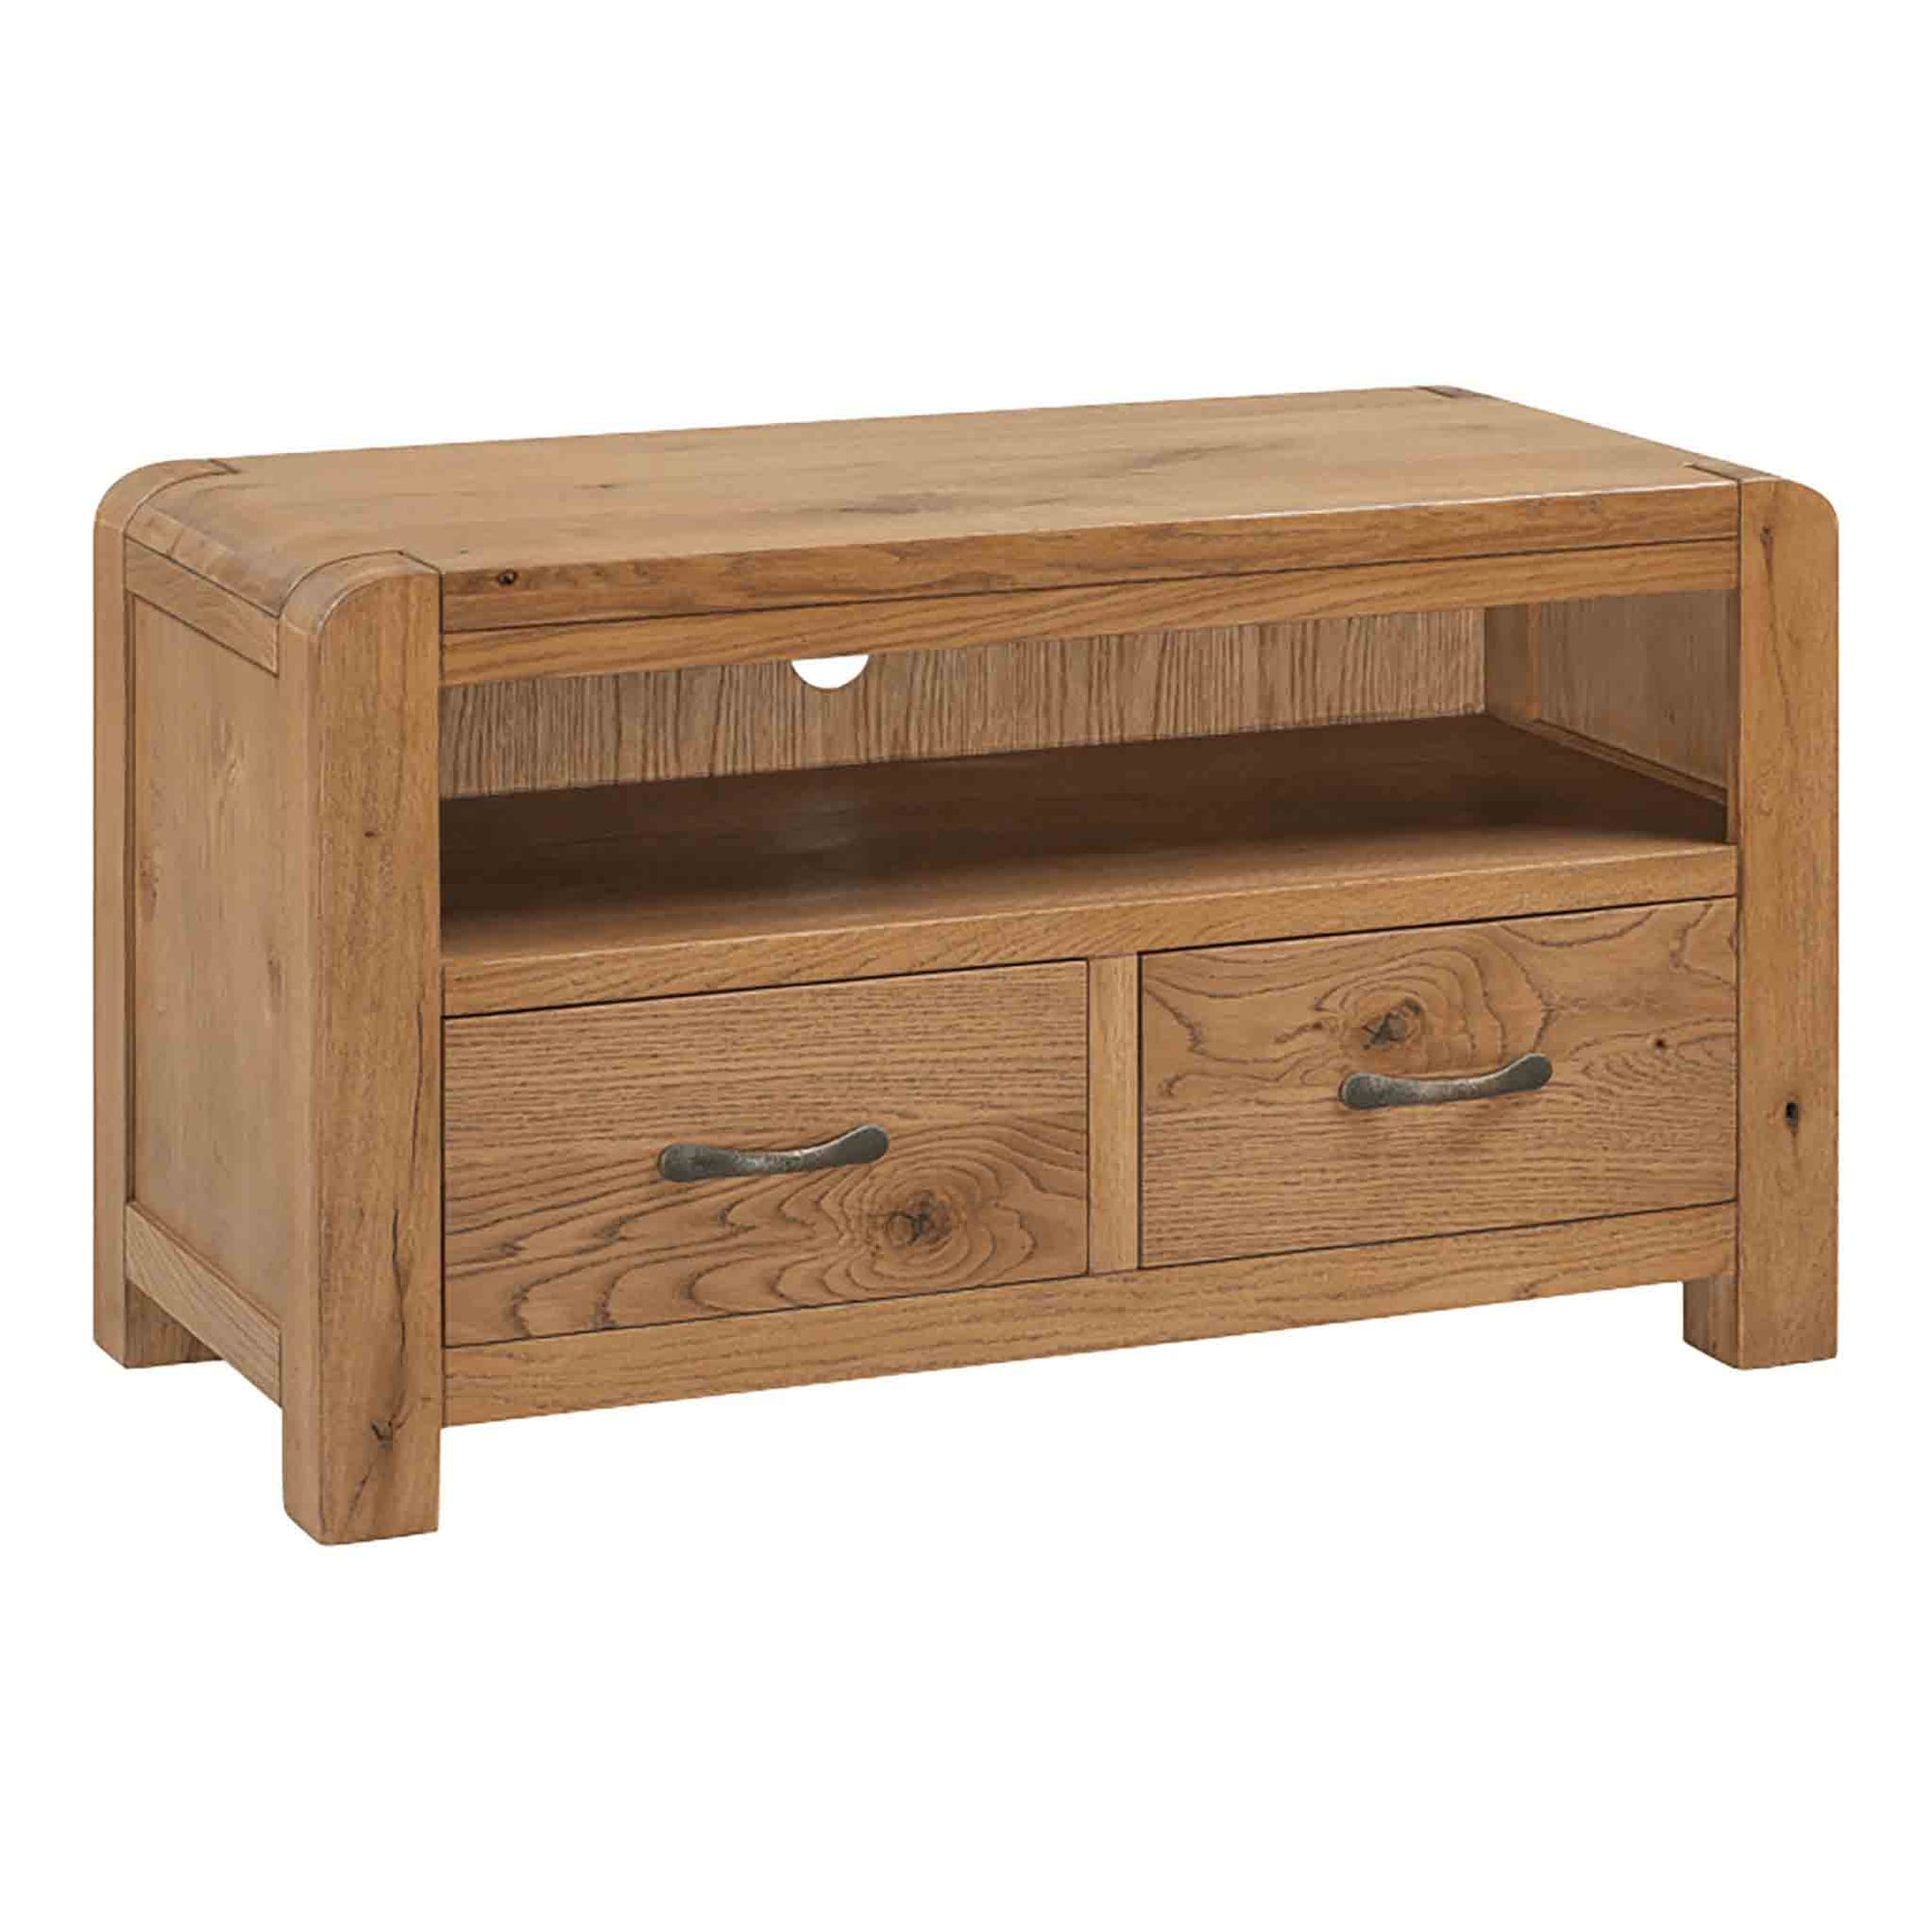 The Capri Oak Small TV Stand Storage Unit from Roseland Furniture